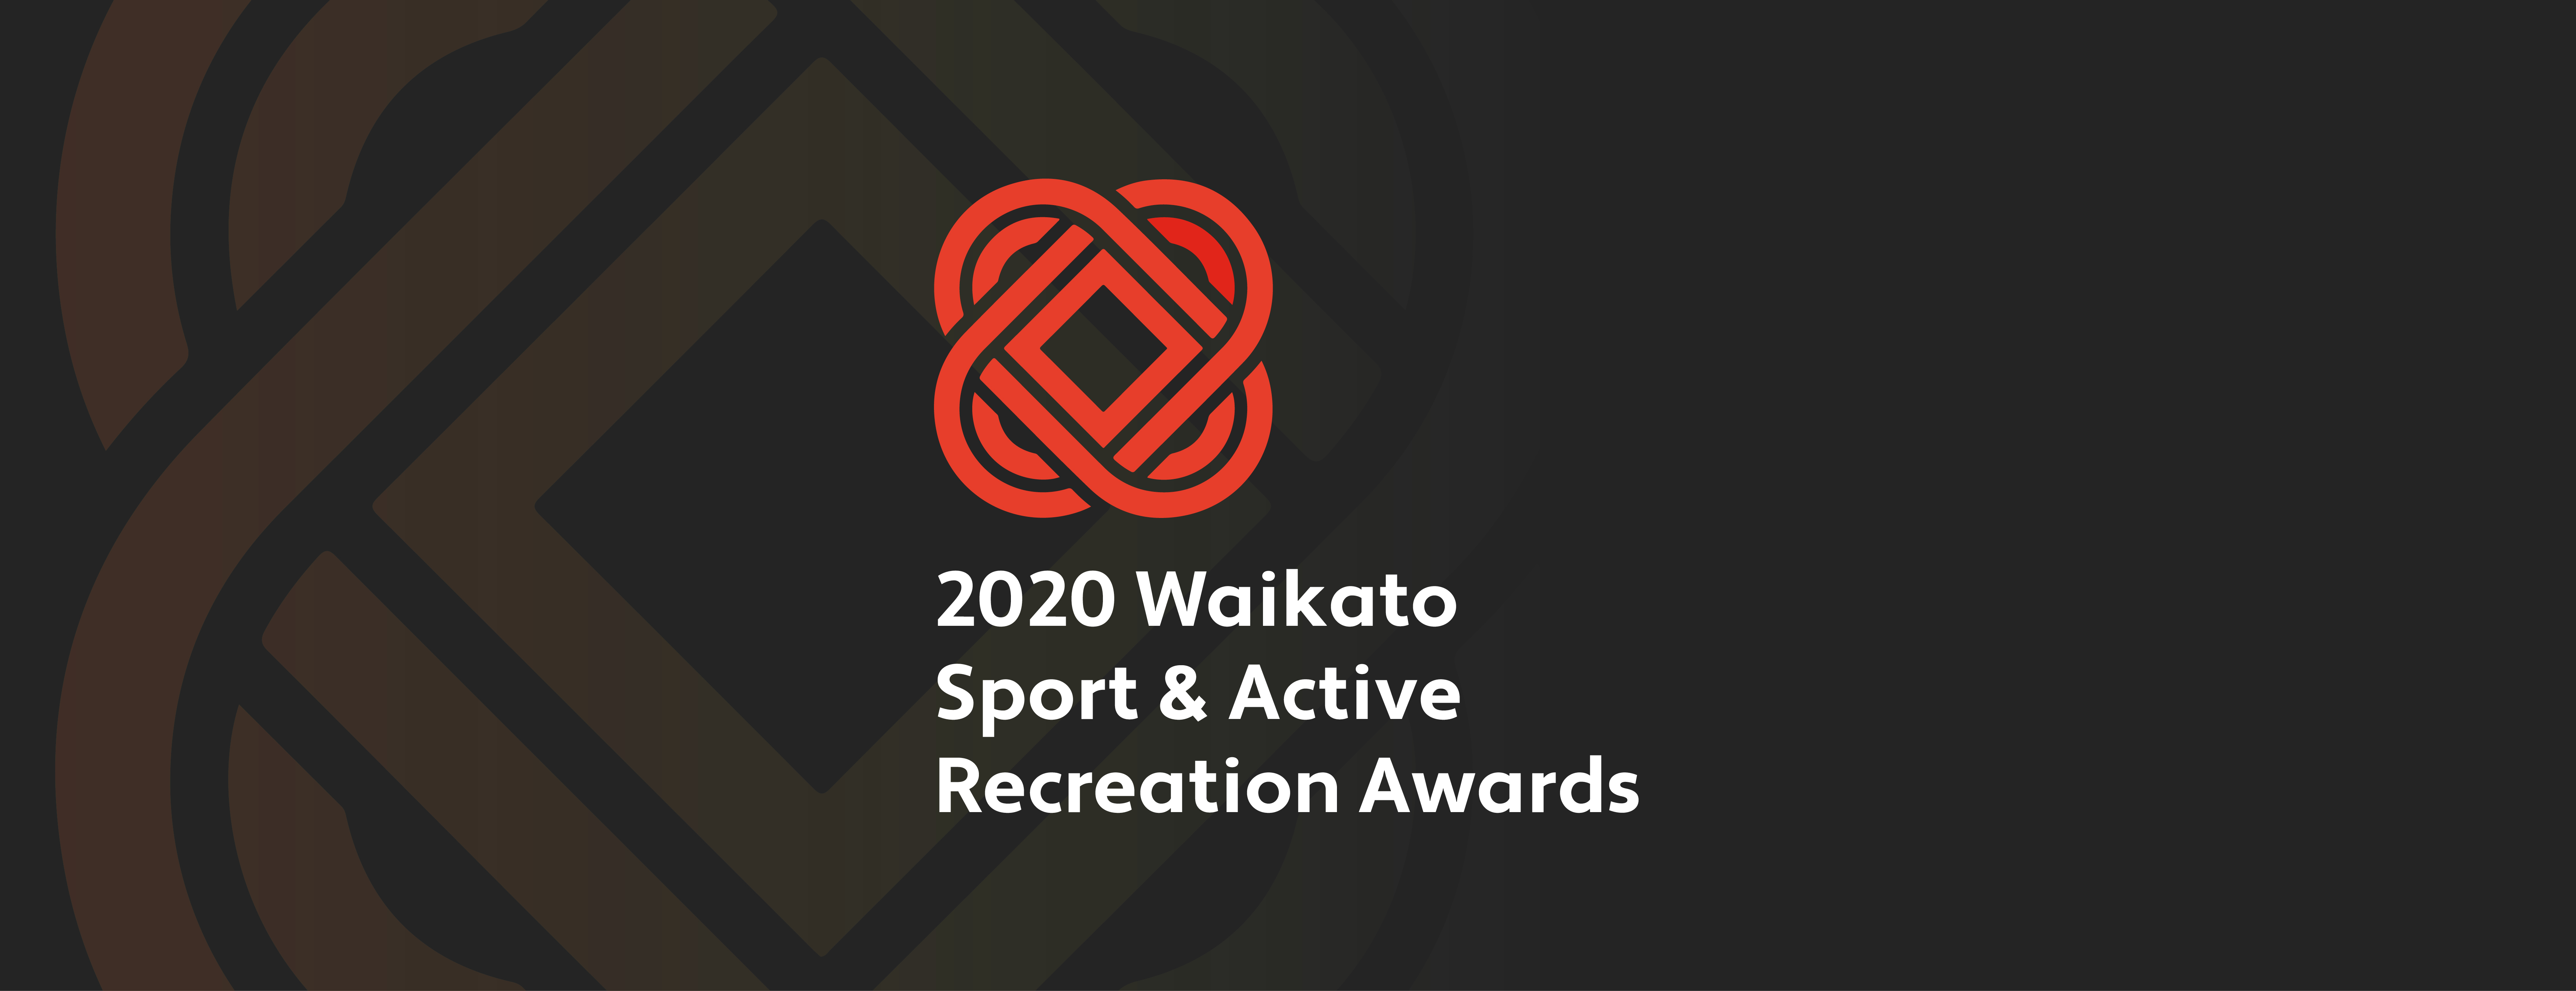 Sport Waikato awards changing for 2020